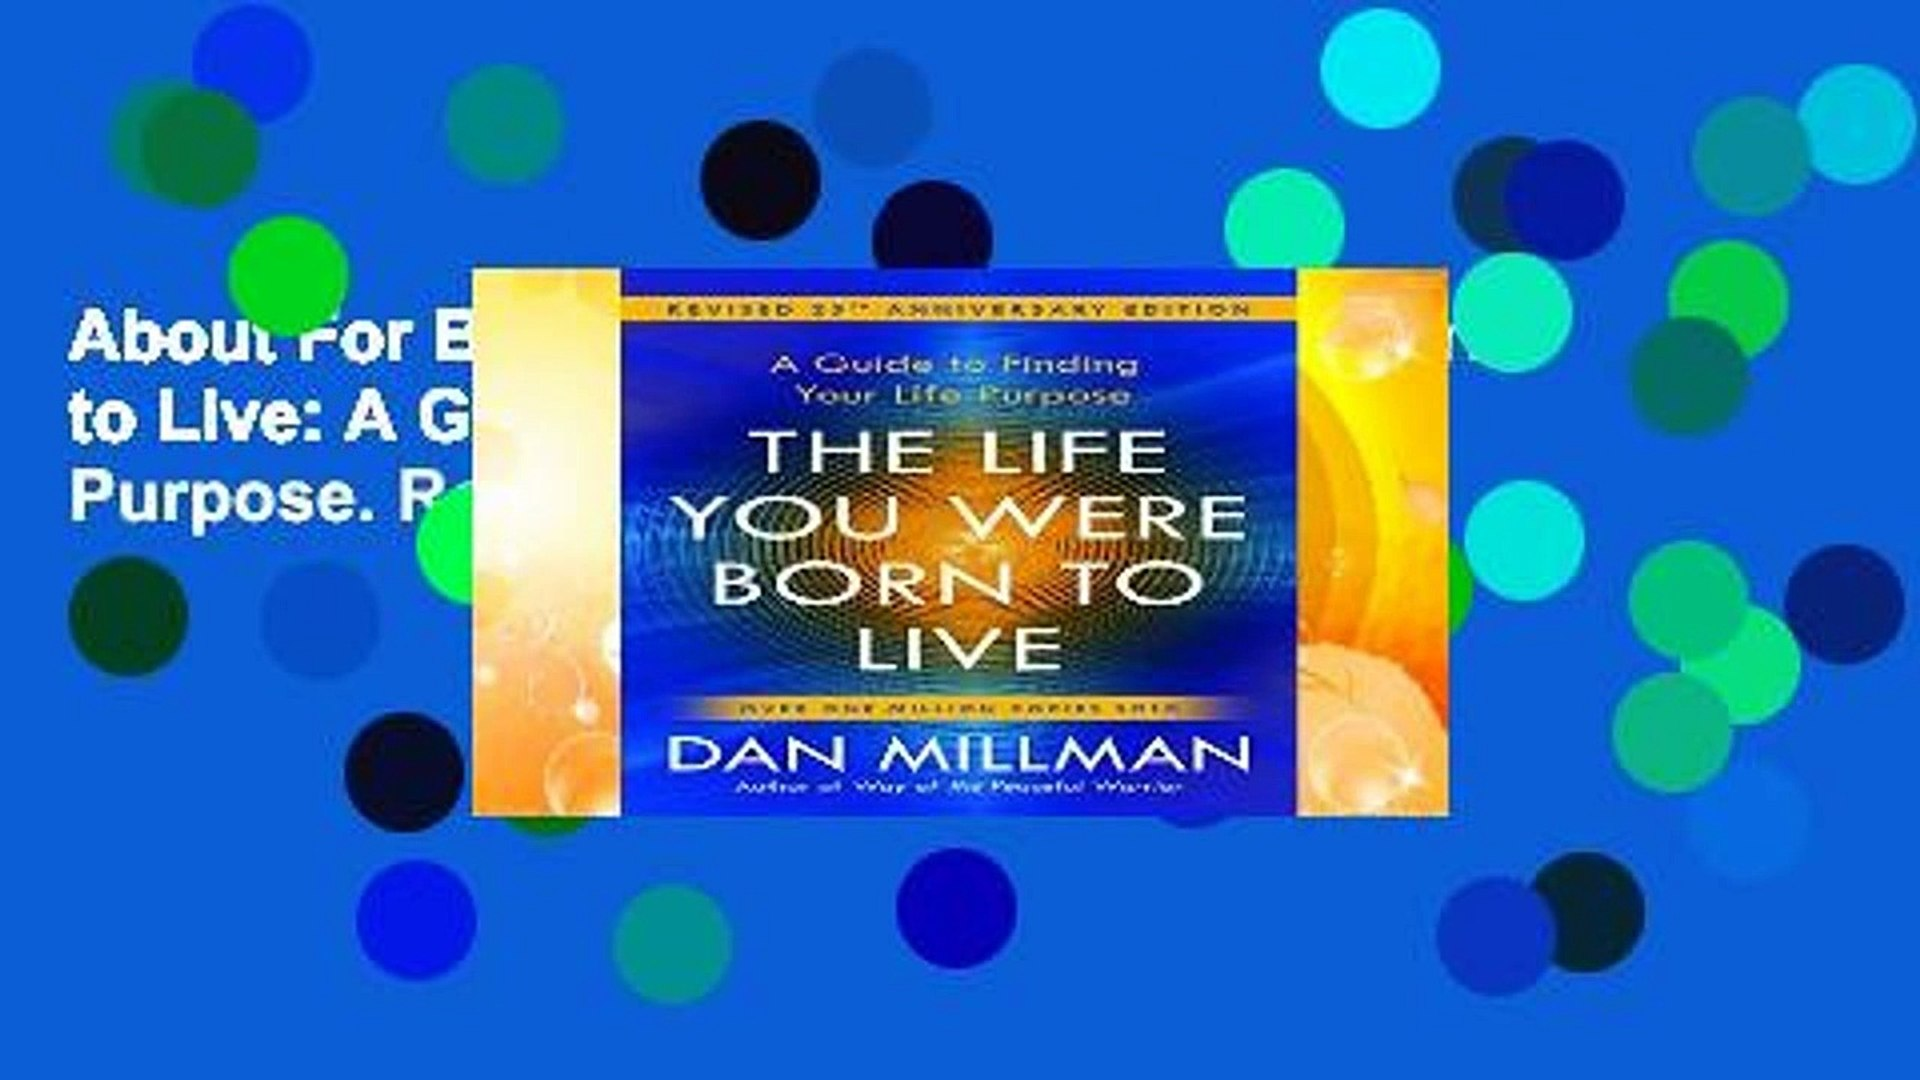 About For Books  The Life You Were Born to Live: A Guide to Finding Your Life Purpose. Revised